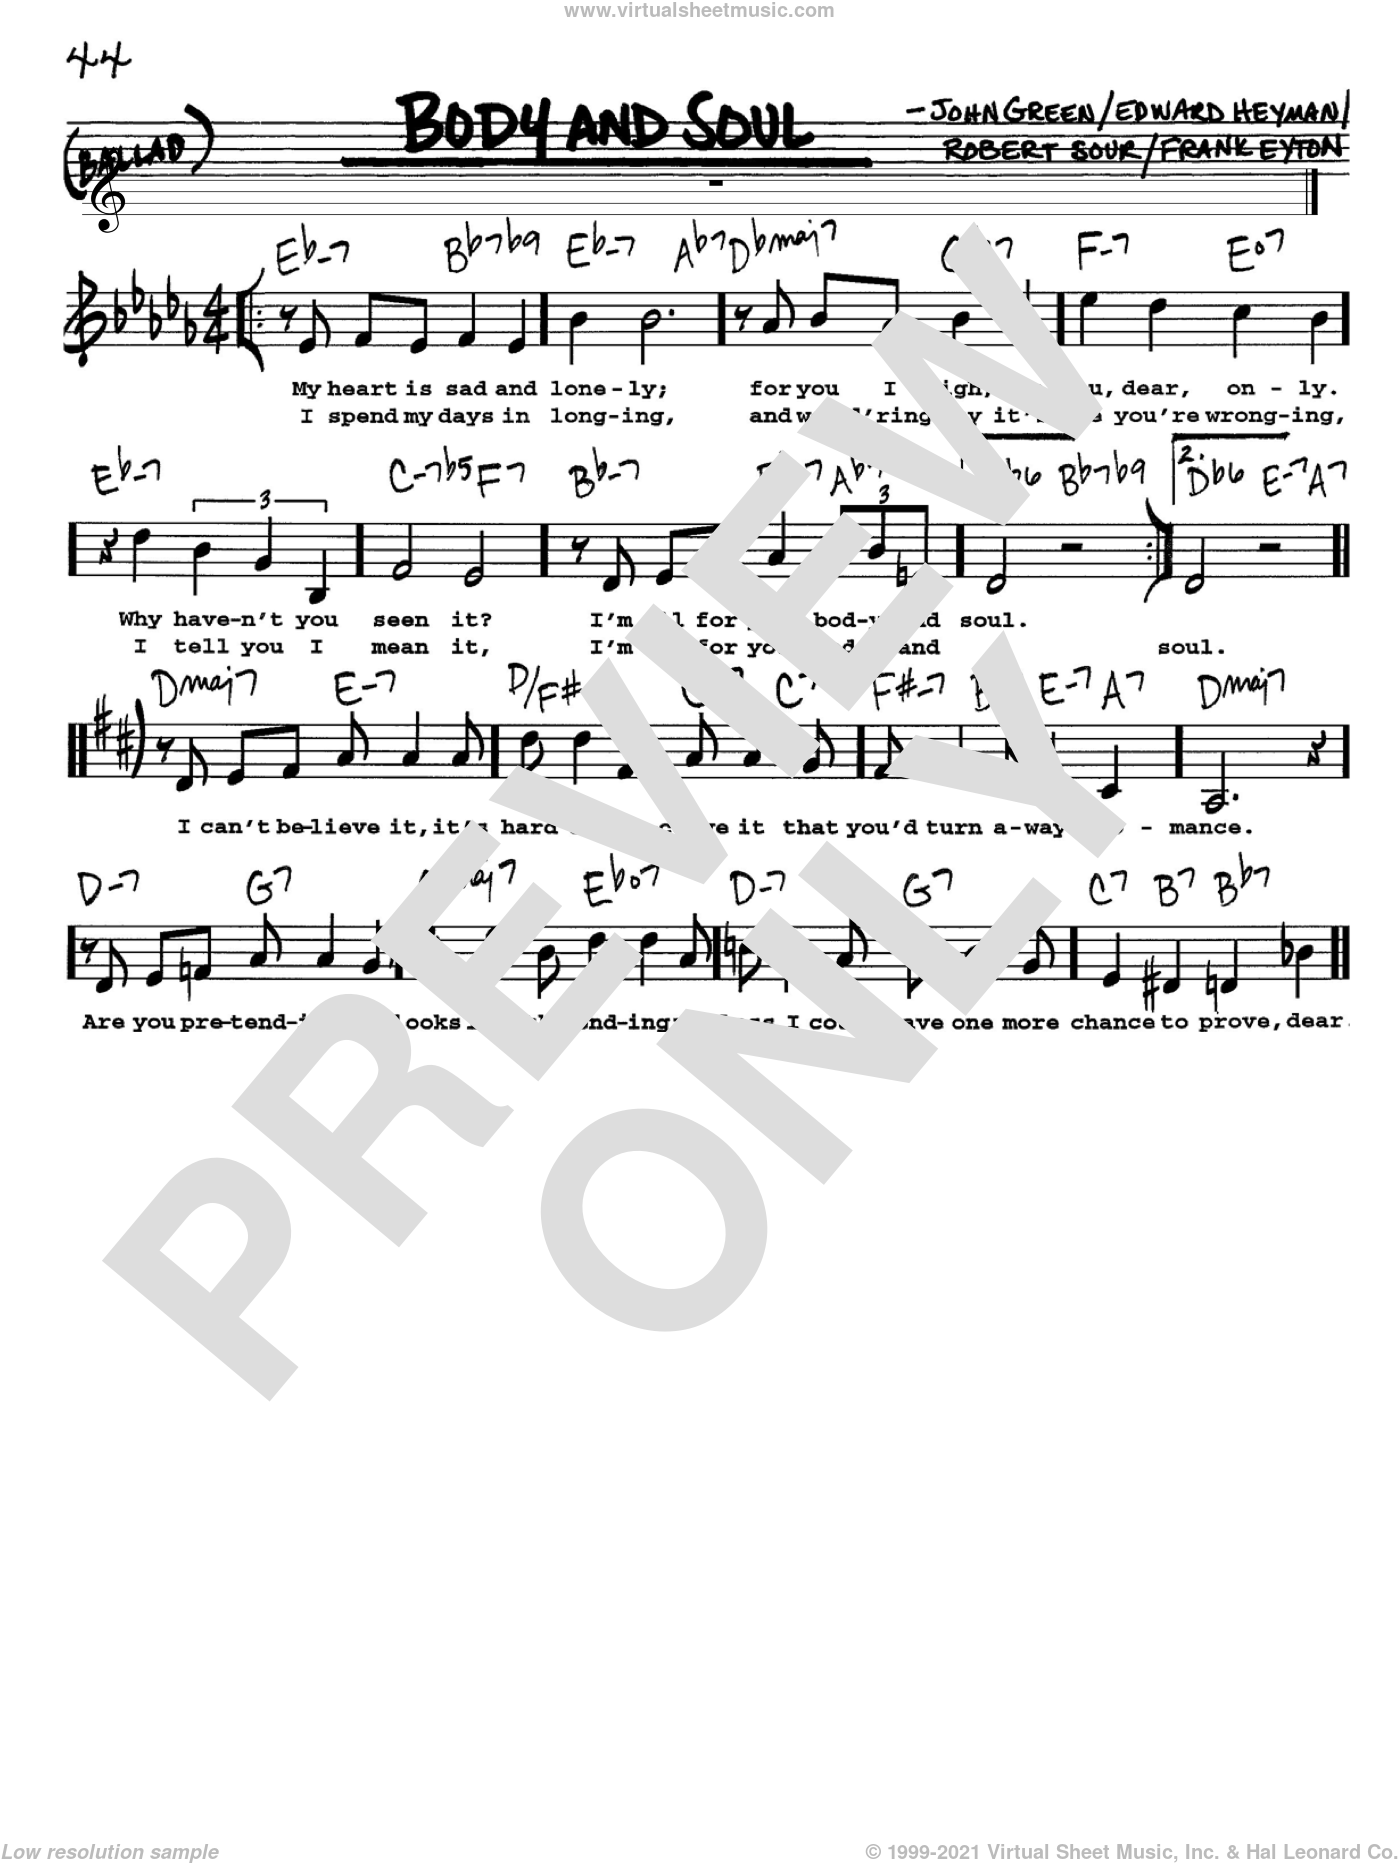 Body And Soul sheet music for voice and other instruments  by Edward Heyman, Frank Eyton, Johnny Green and Robert Sour, intermediate skill level